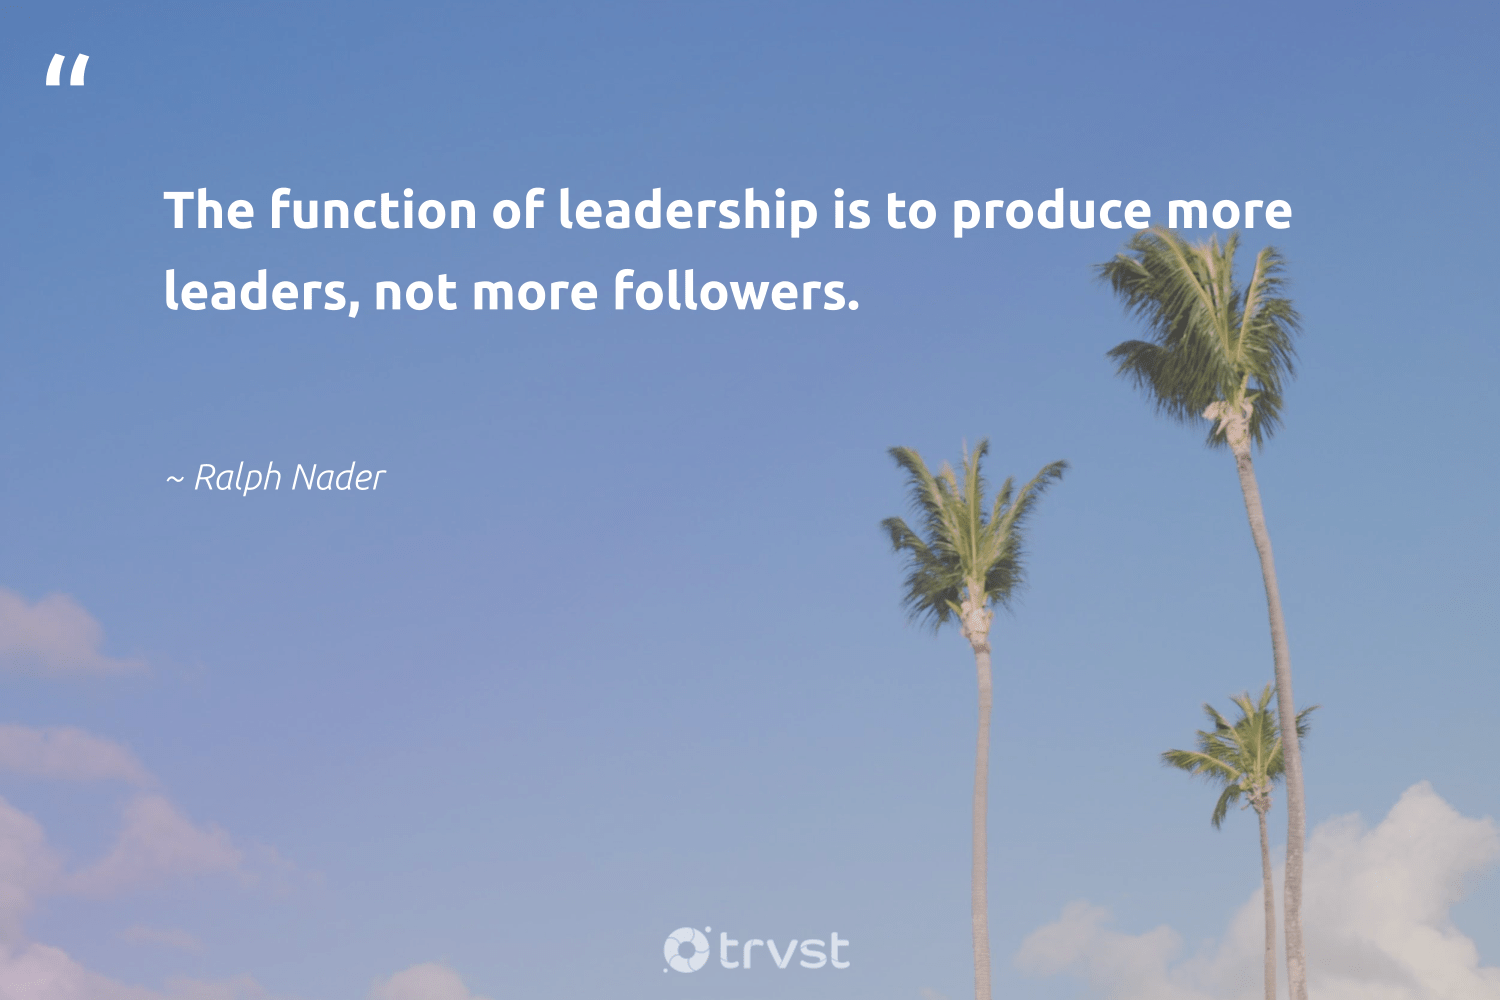 """The function of leadership is to produce more leaders, not more followers.""  - Ralph Nader #trvst #quotes #leadership #leadershipqualities #begreat #nevergiveup #dosomething #leadershipdevelopment #futureofwork #softskills #dogood #leadershipskills"